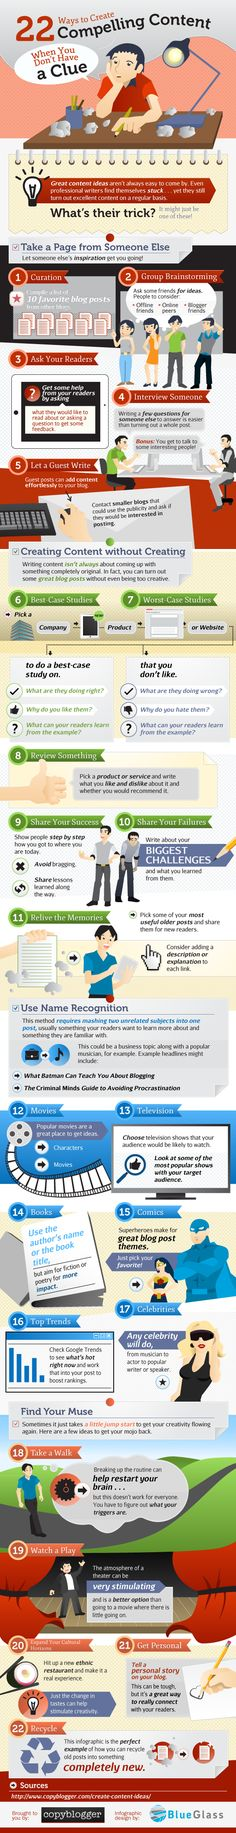 #Infographic #content  http://www.businesstrainingmadesimple.co.uk/blog/22-ways-to-inspire-content-when-you-dont-have-a-clue/ Copyblogger